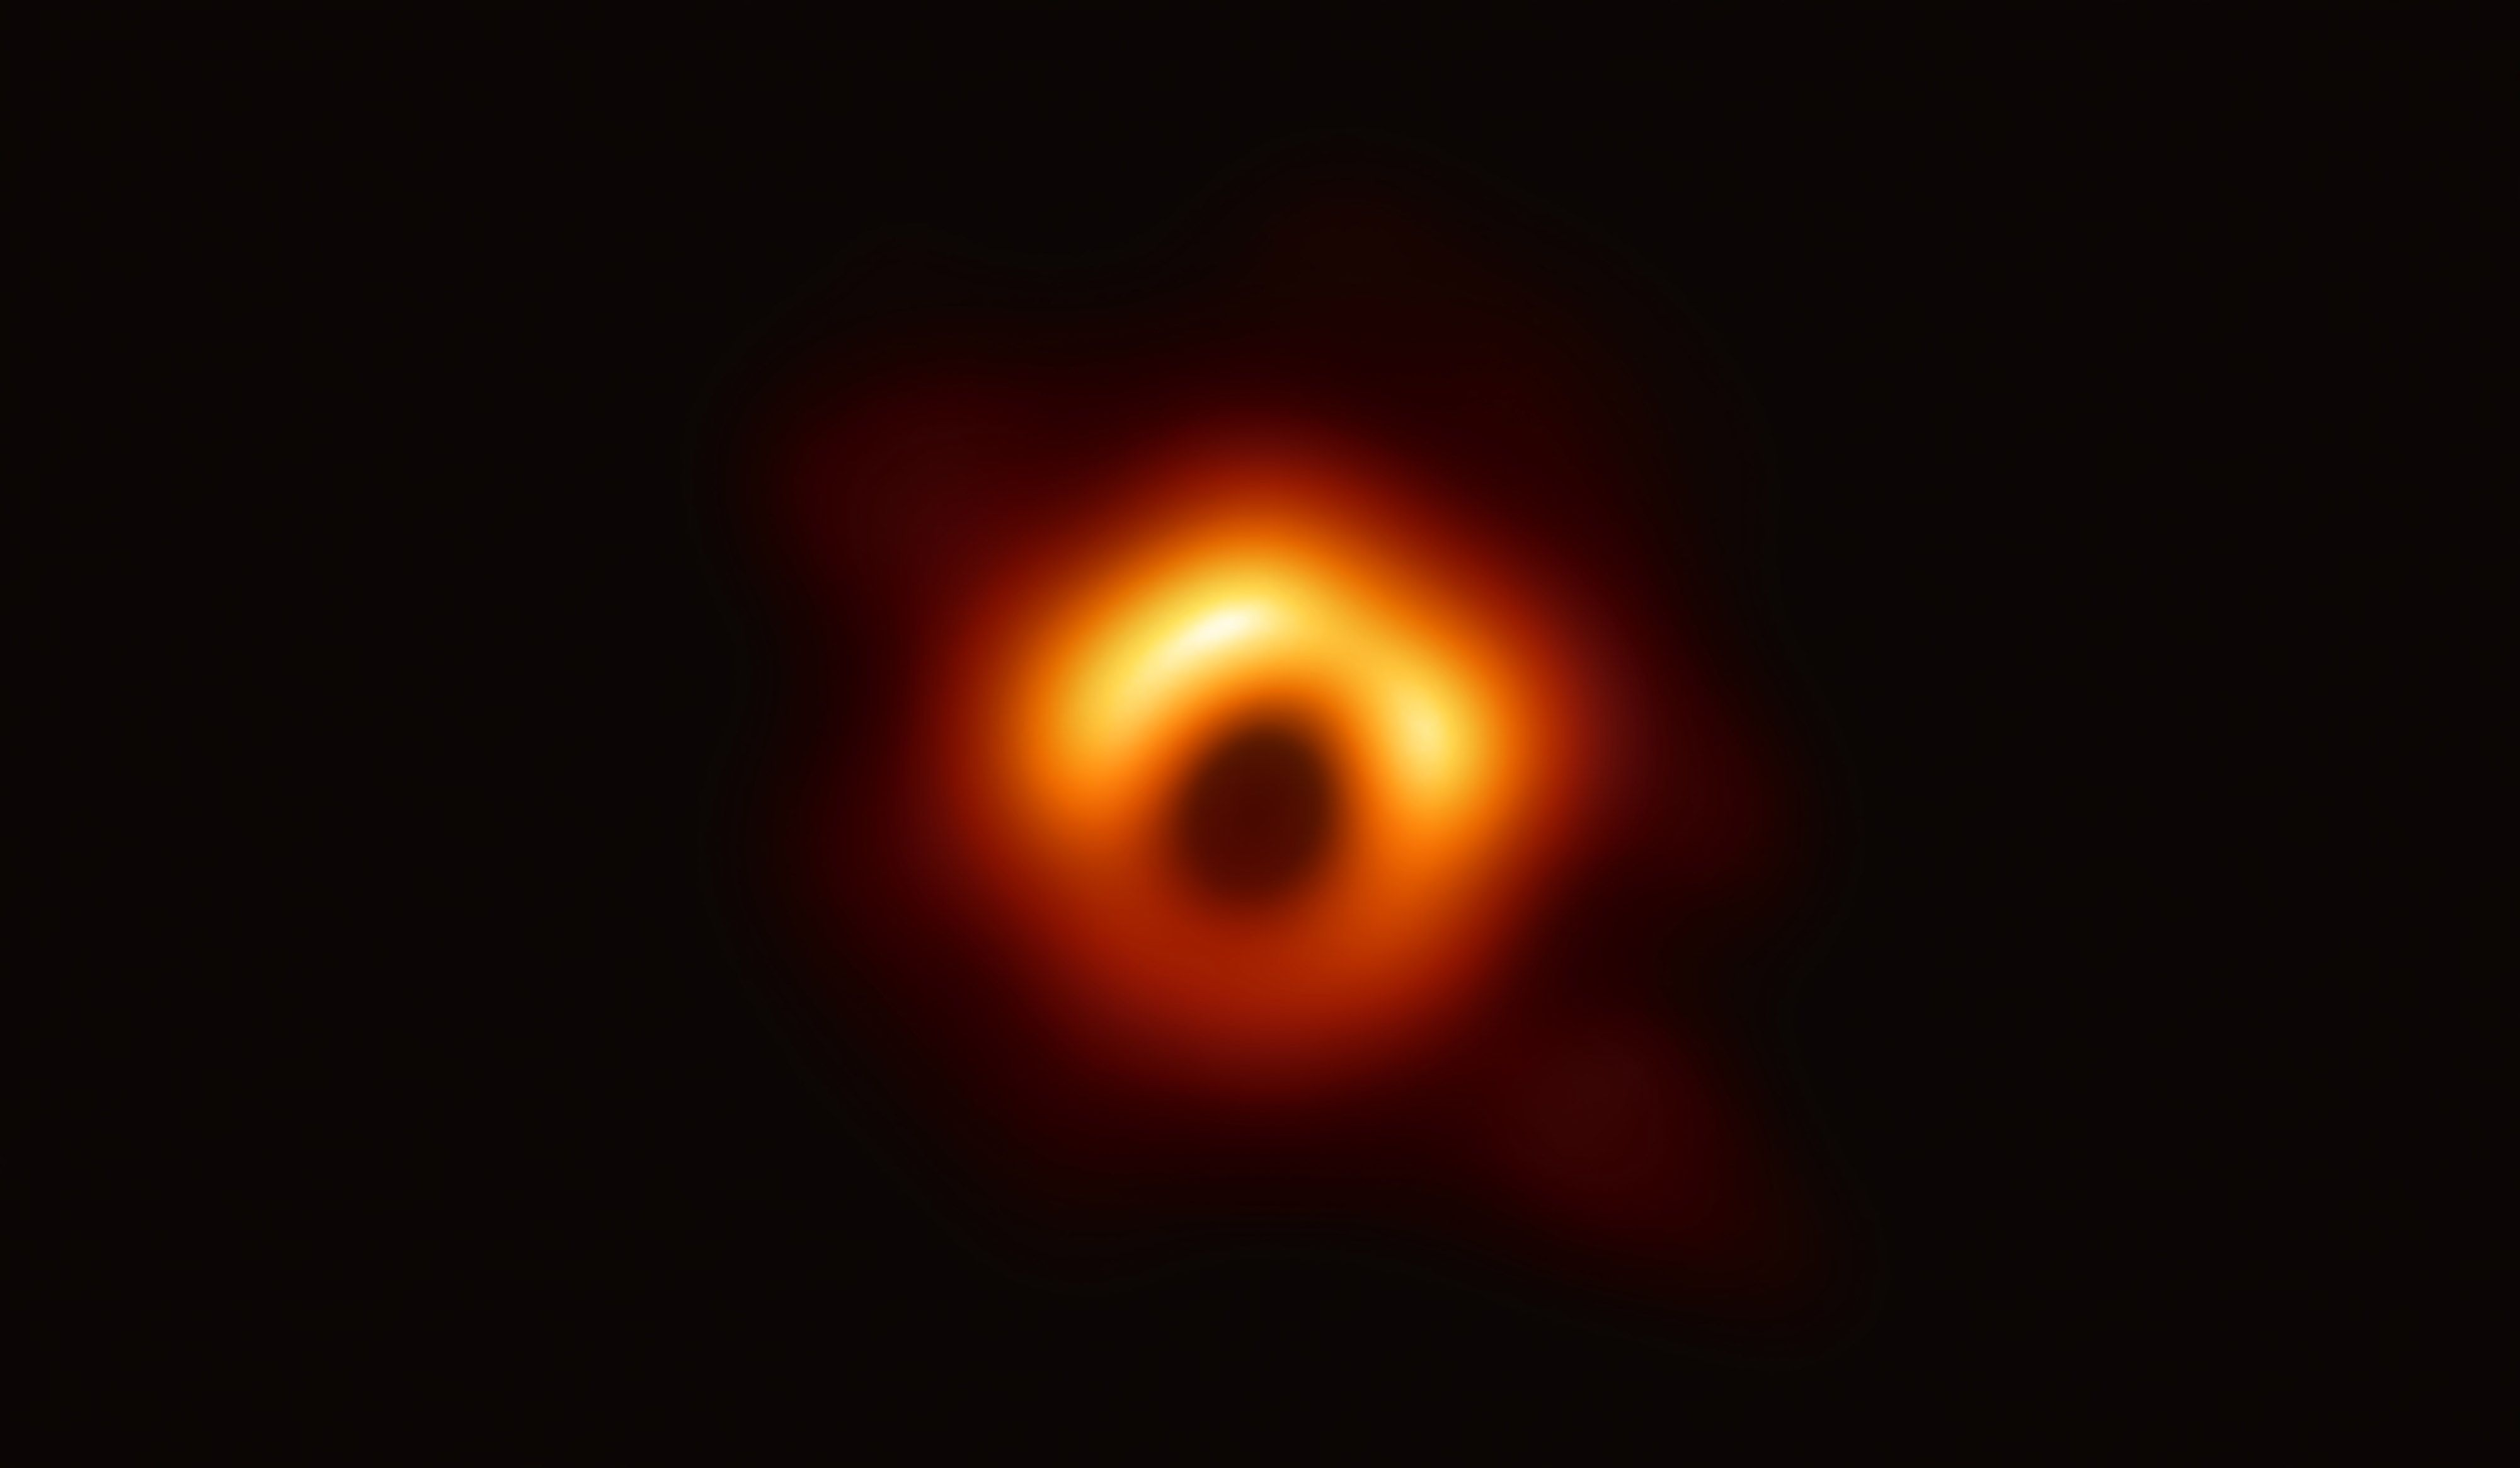 Silicon Valley Lecture Series kicks off 2020 on how we got the first black hole image